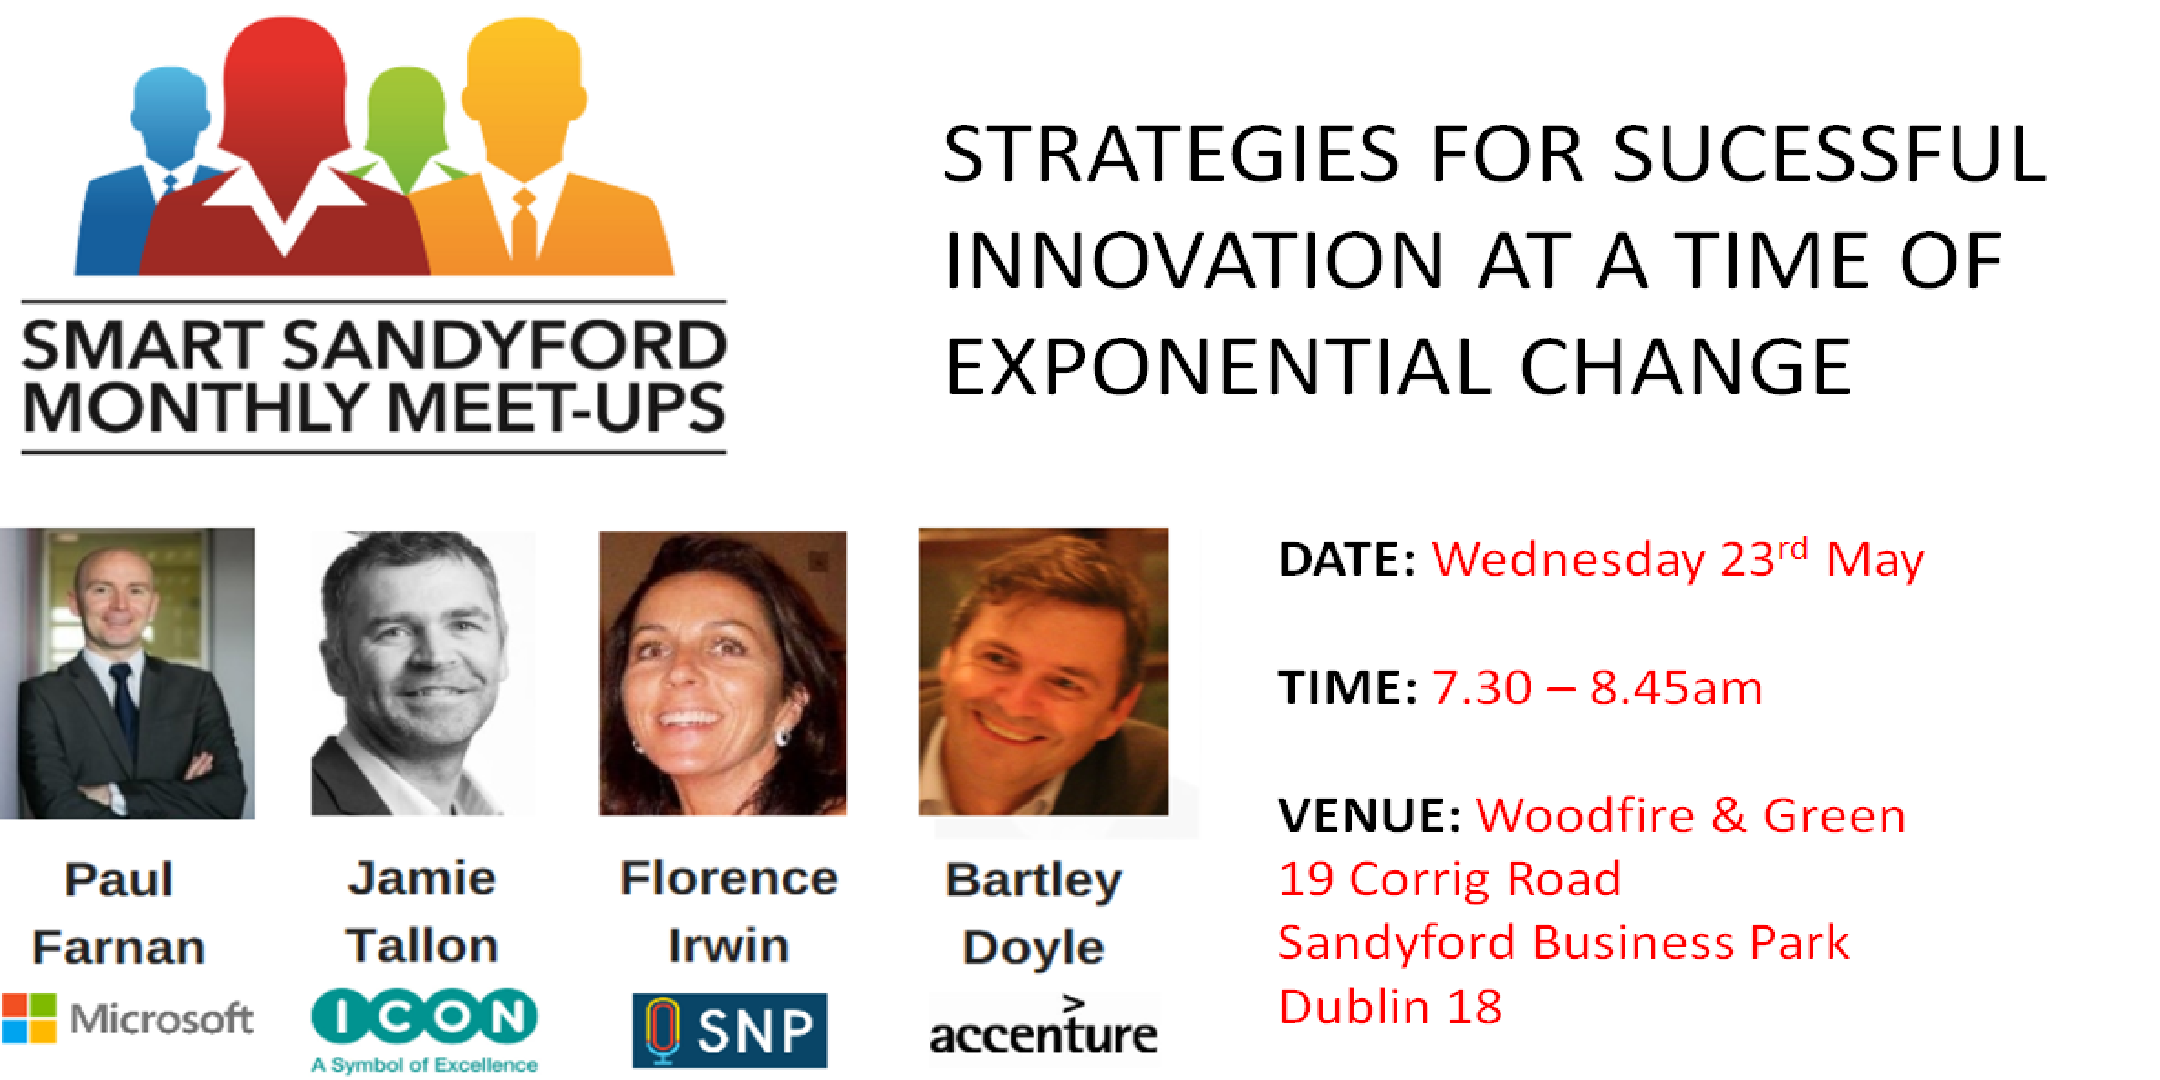 Strategies for Successful Innovation at a Time of Exponential Change